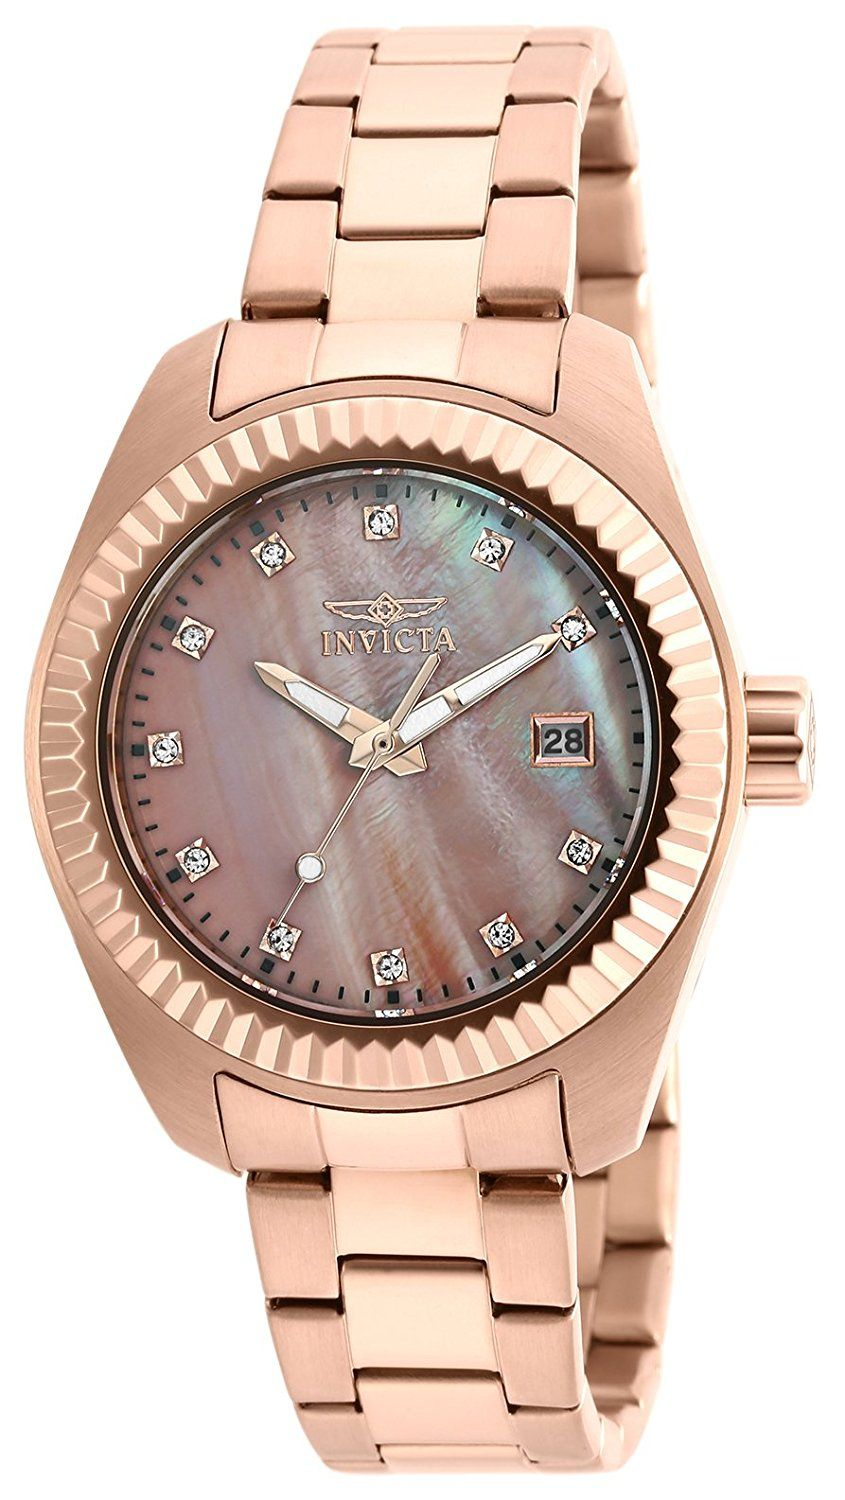 722c2a16203 Invicta Women s 20353 Specialty Analog Display Quartz Rose Gold Watch      You can get additional details at the image link. (This is an Amazon  Affiliate ...